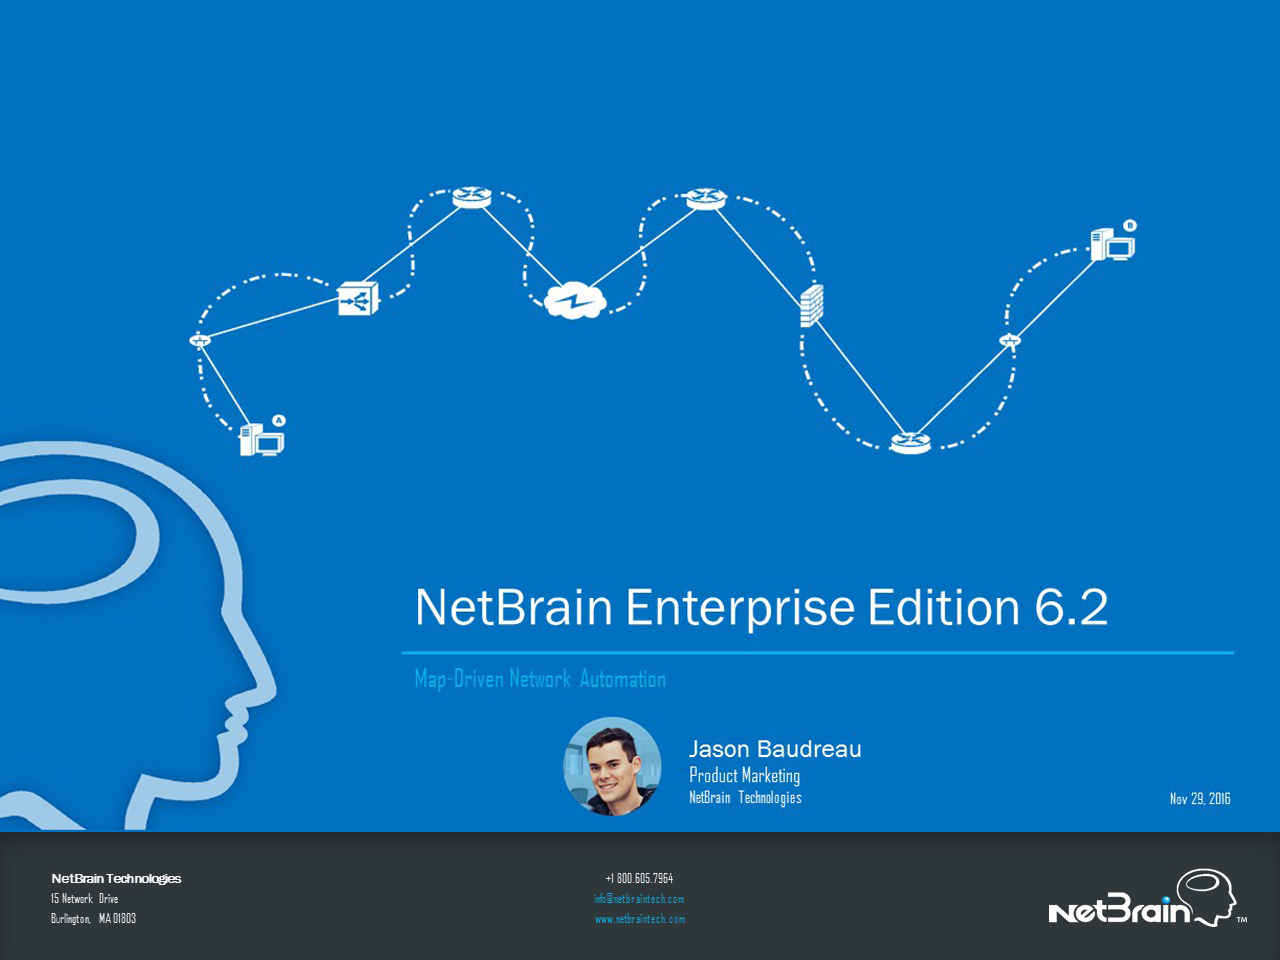 NetBrain Enterprise Edition 6.2 Release